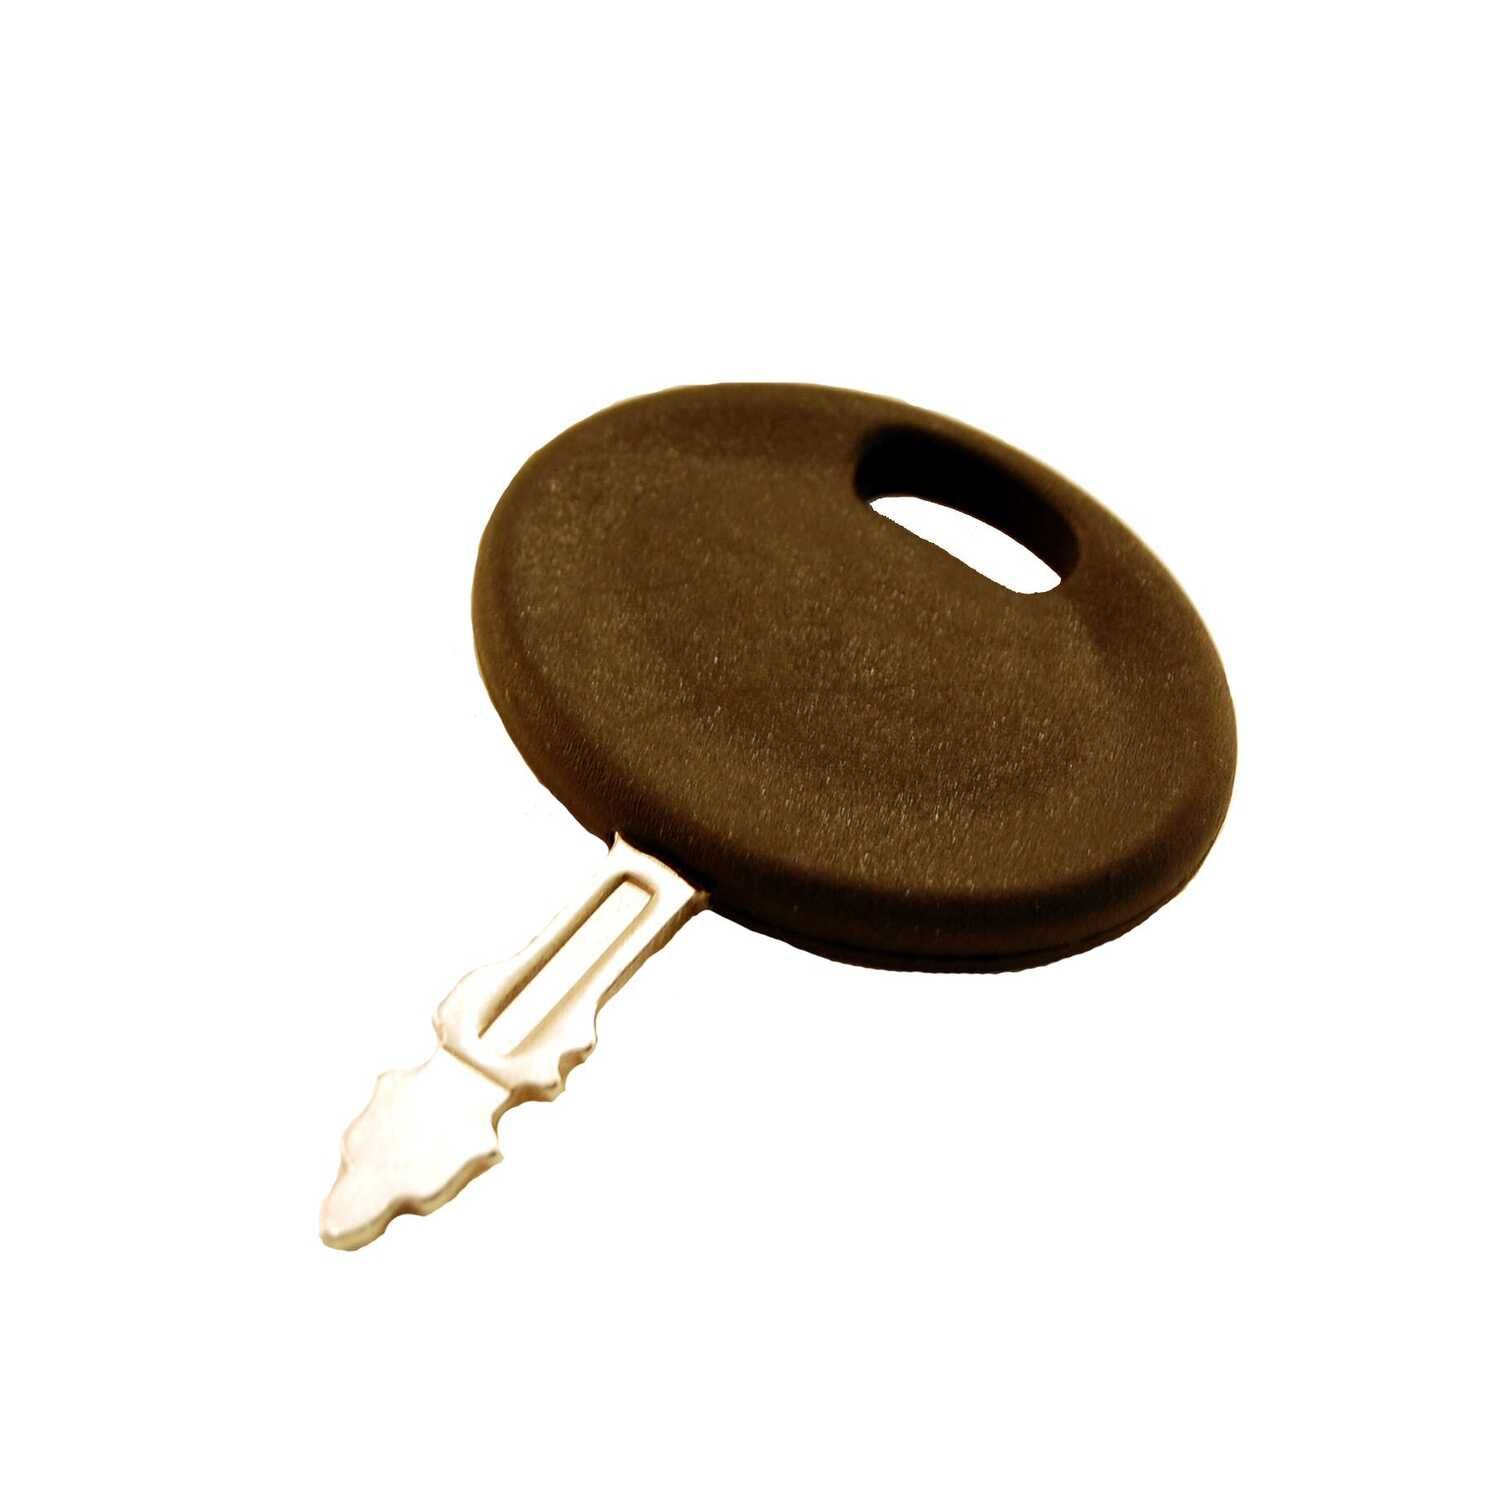 Ace  Lawn Mower/Tractor Ignition Key  1 pk